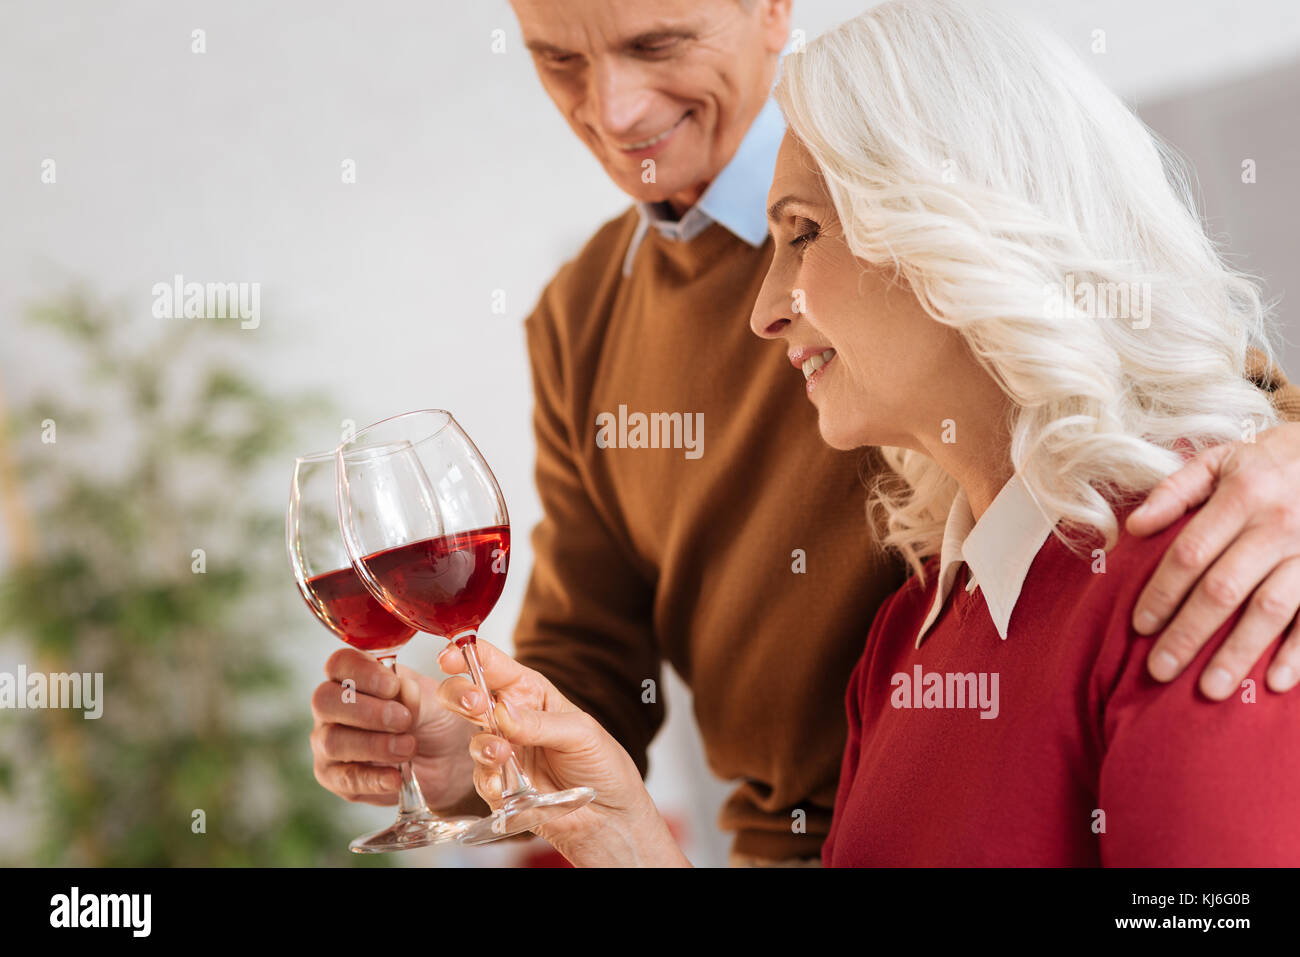 Cheerful married couple drinking red wine - Stock Image